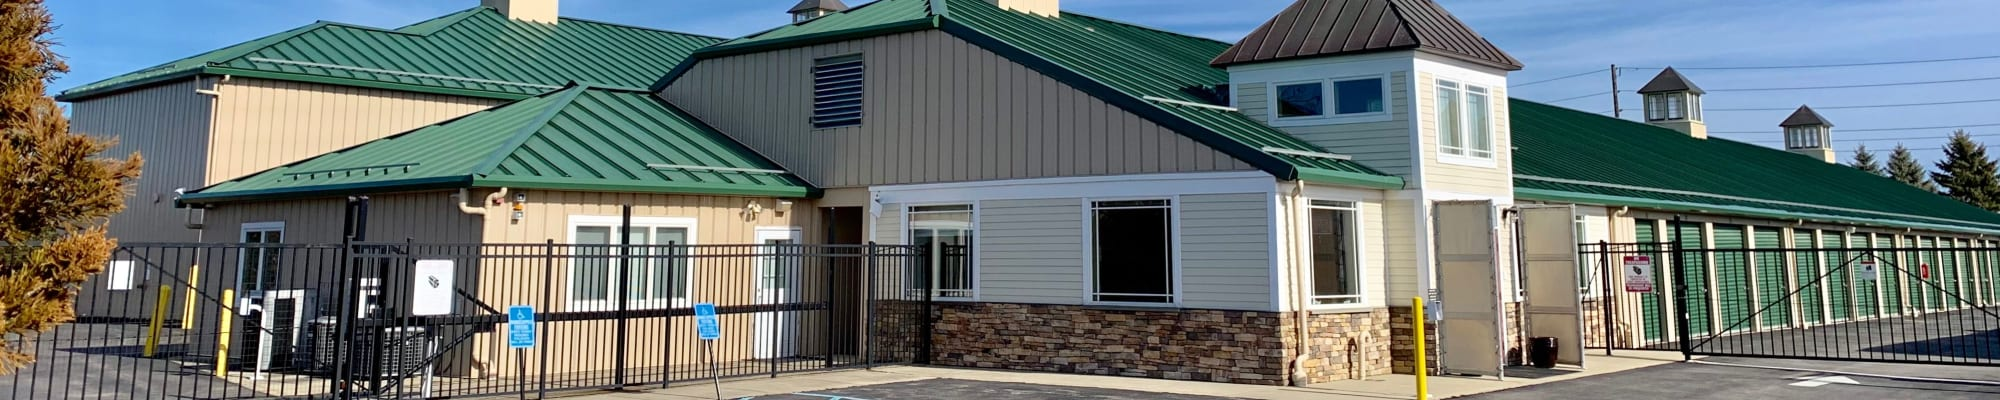 View the unit, sizes & prices at GoodFriend Self Storage North Fork in Cutchogue, New York.